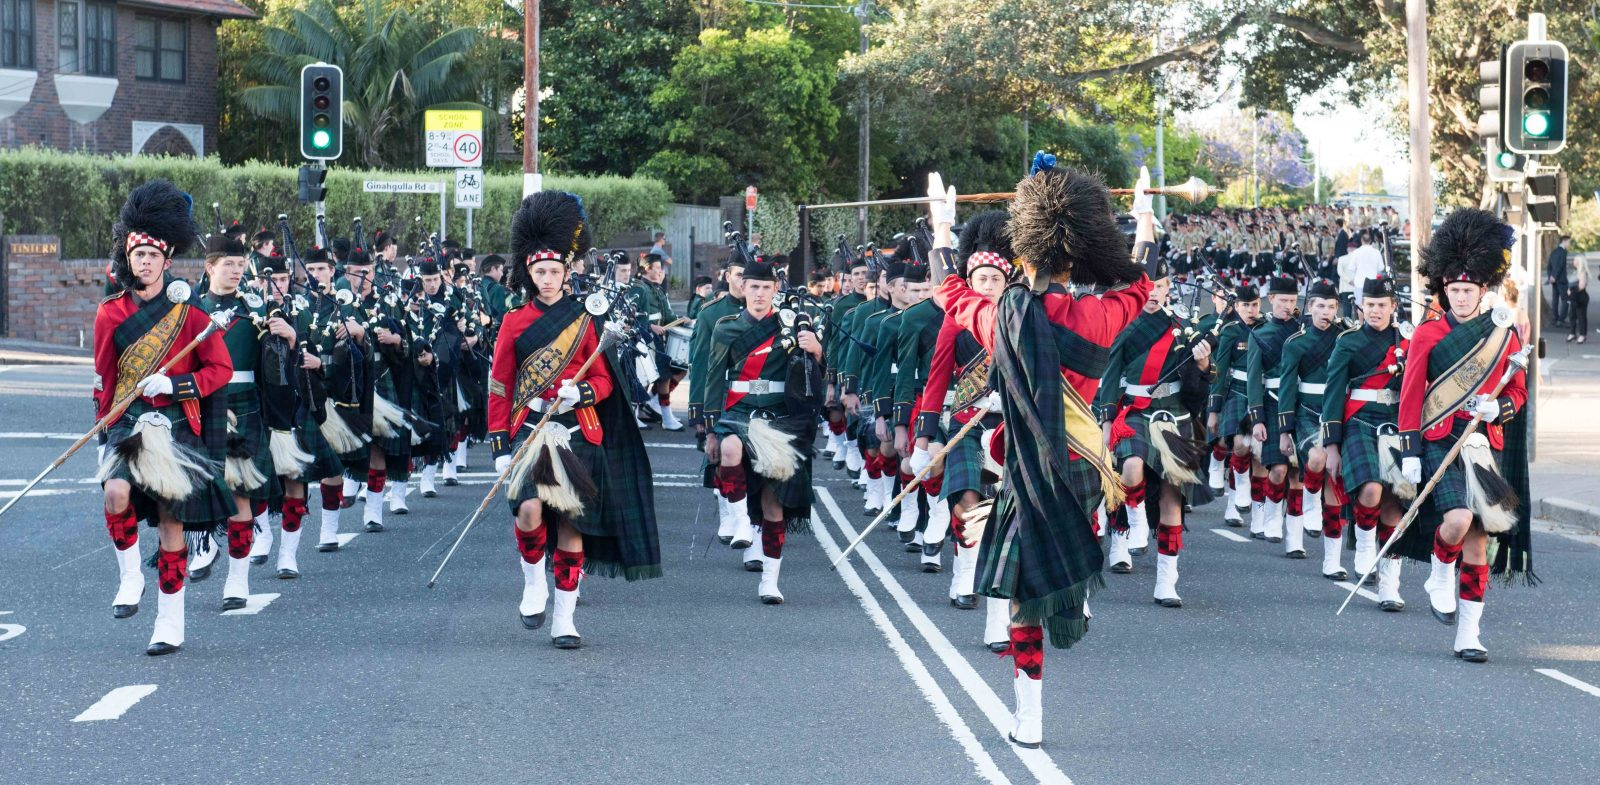 The Scots College Pipes and Drums, crossing the Victoria Road, Bellevue Hill.